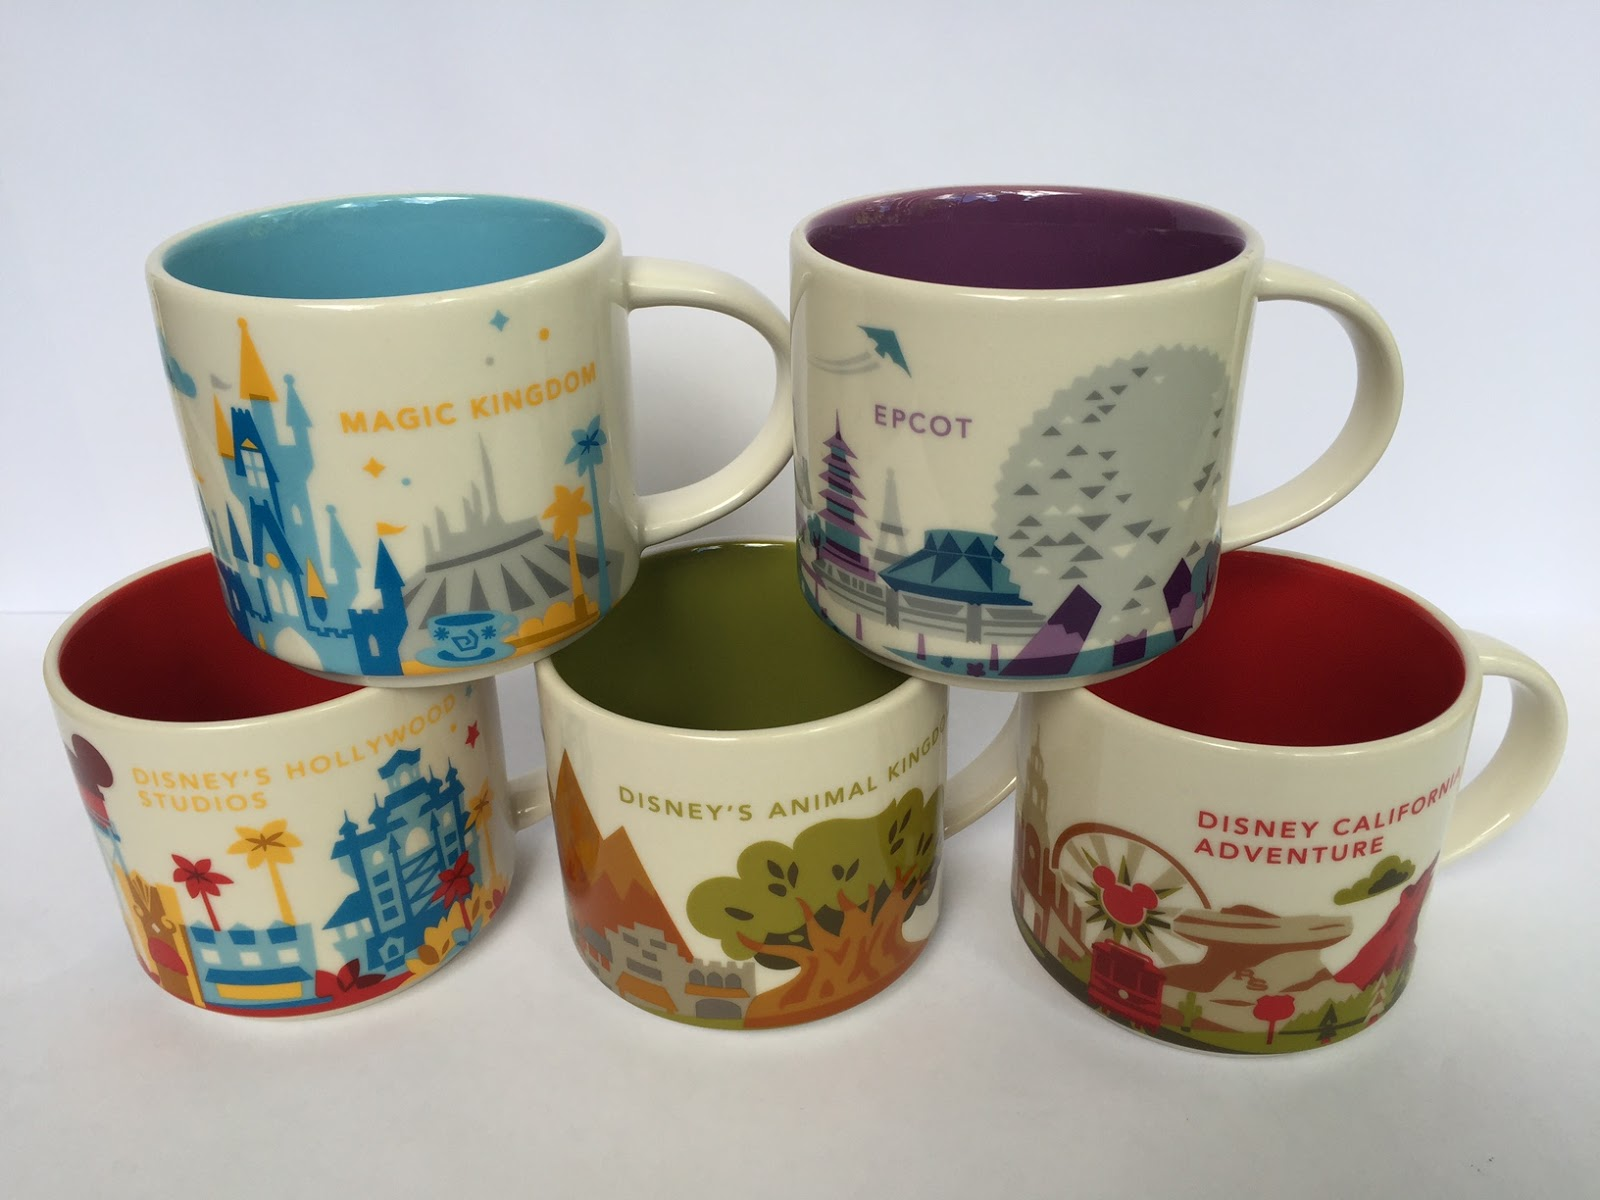 Plus the Magic: Disney Parks and Starbucks- You Are Here mugs